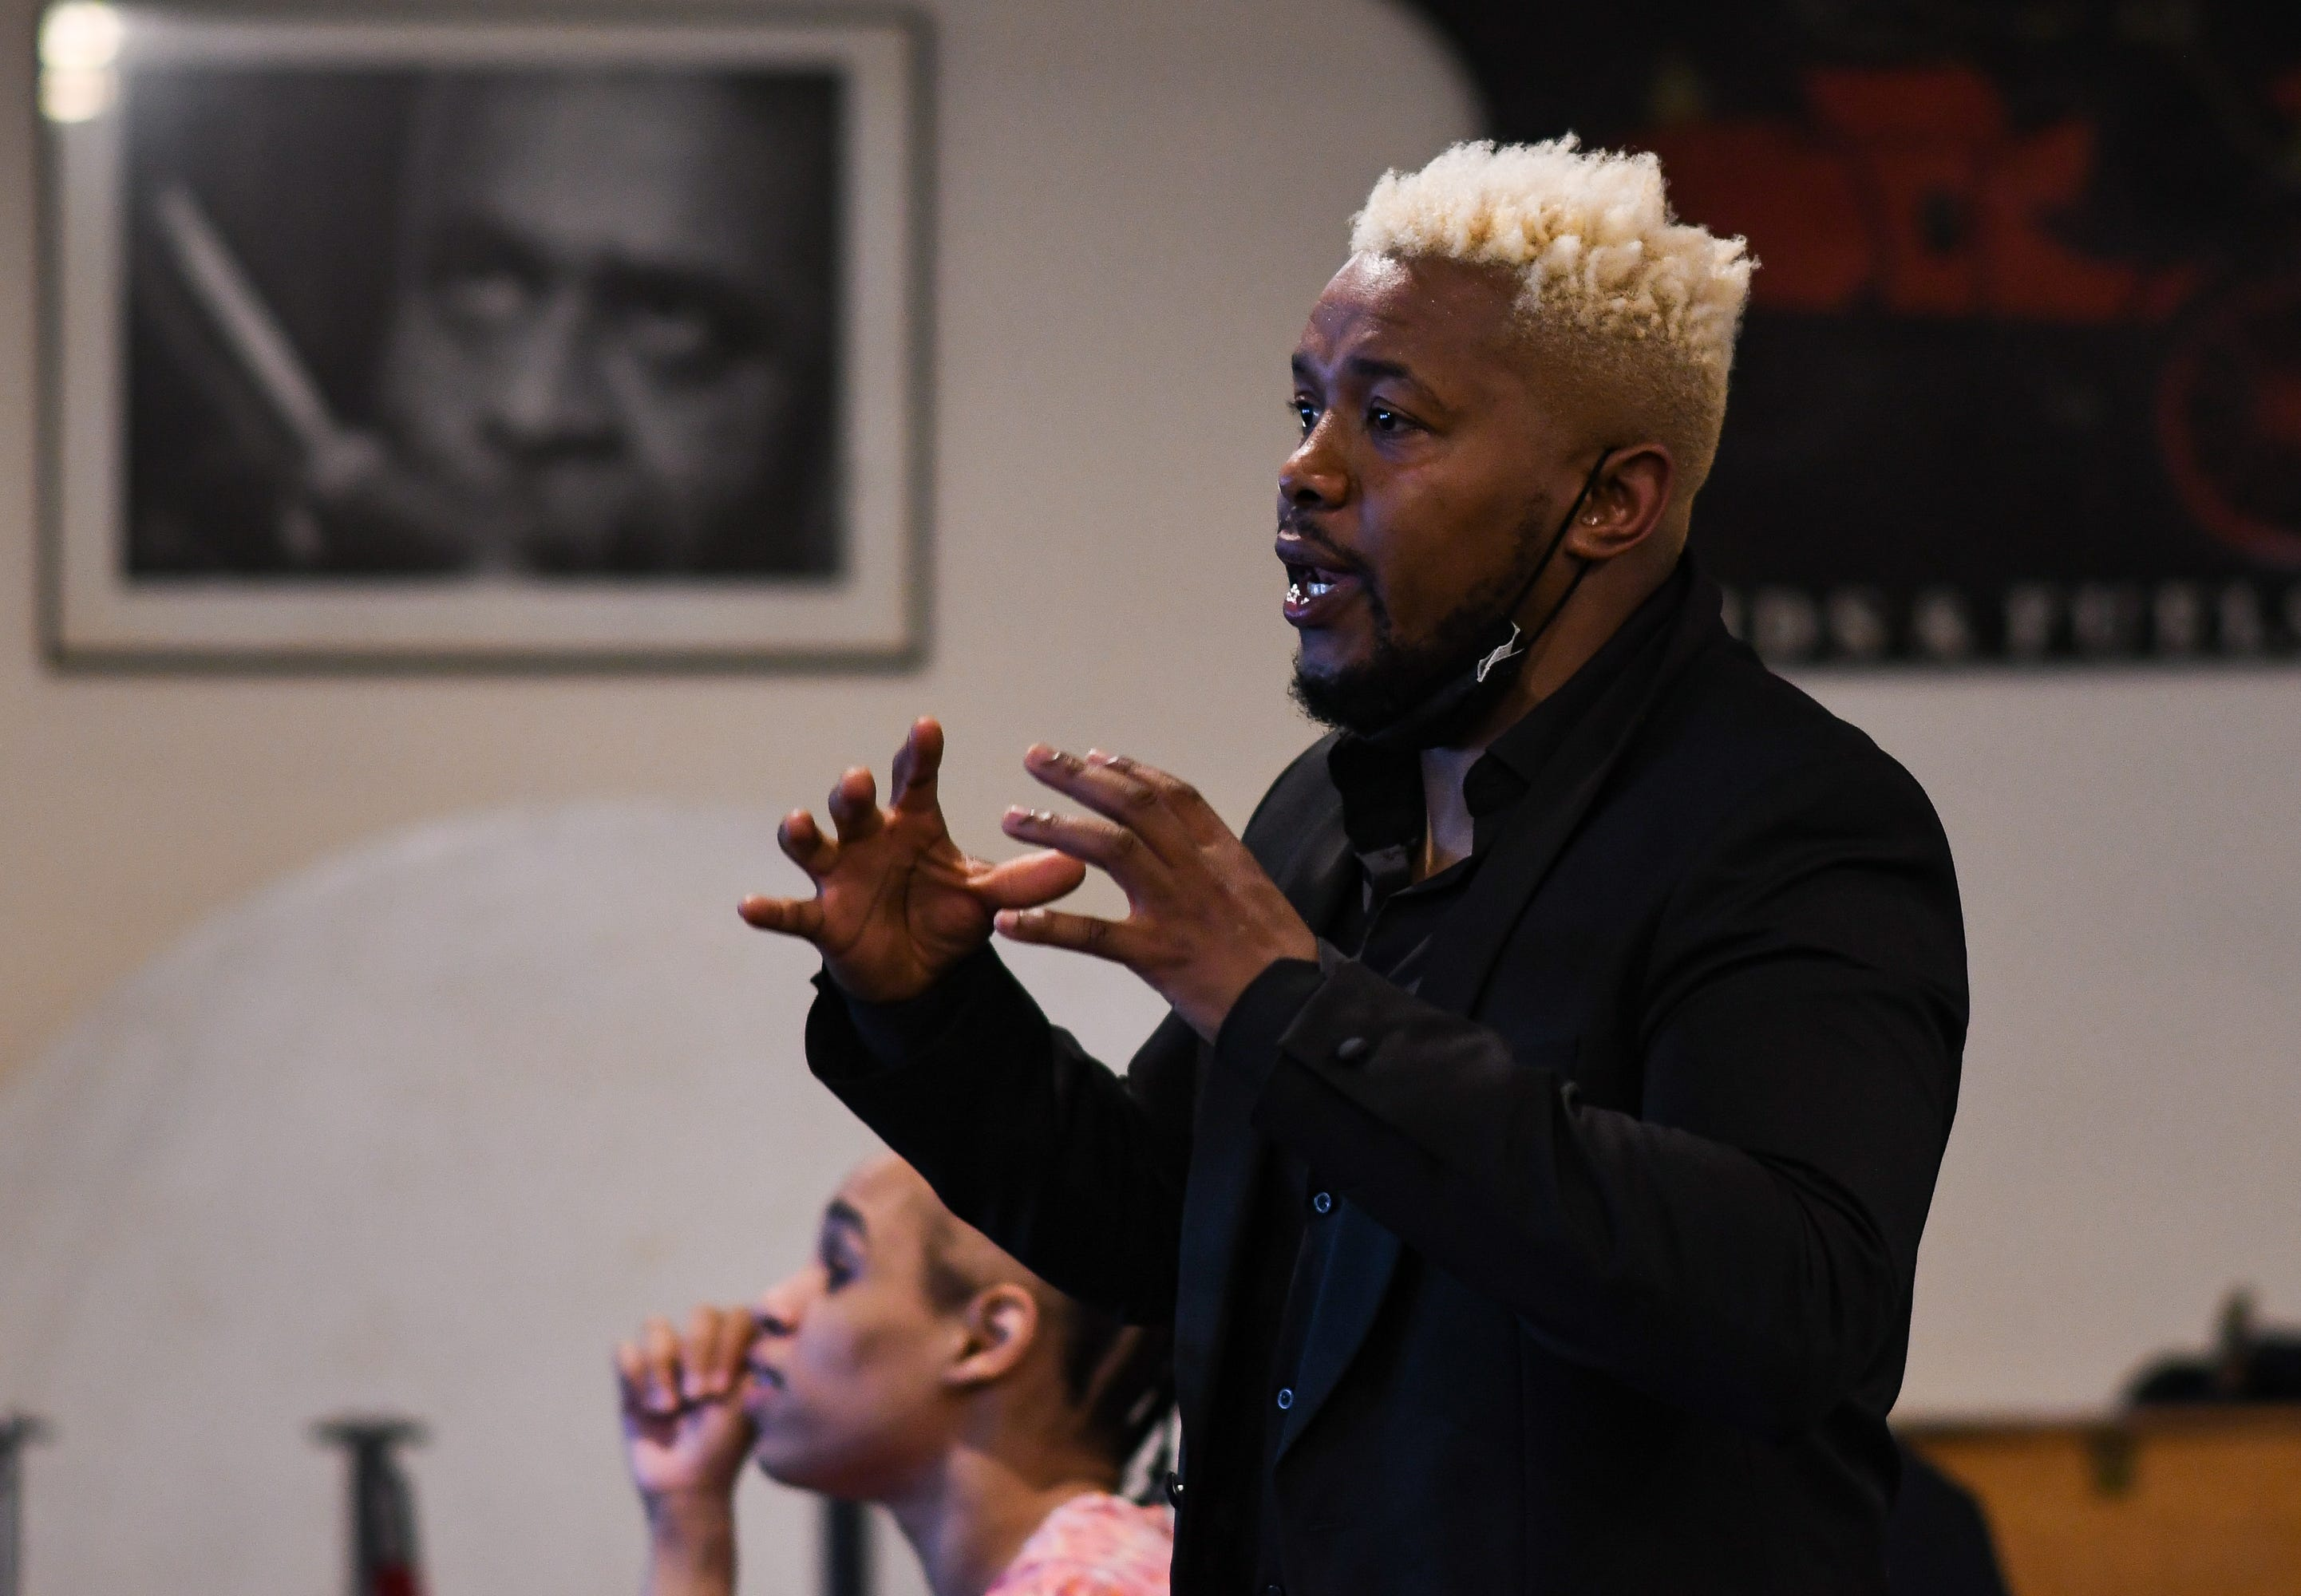 """""""Let's stop competing and start networking,"""" said Leo Brown, founder of Black Wall Street of Lansing, during a networking event held Monday, May 24, 2021 at Gregory's in Lansing. The group's aim is to bring together Black entrepreneurs, business owners, organizations and consumers to create a self-sufficient Black economy in Lansing."""